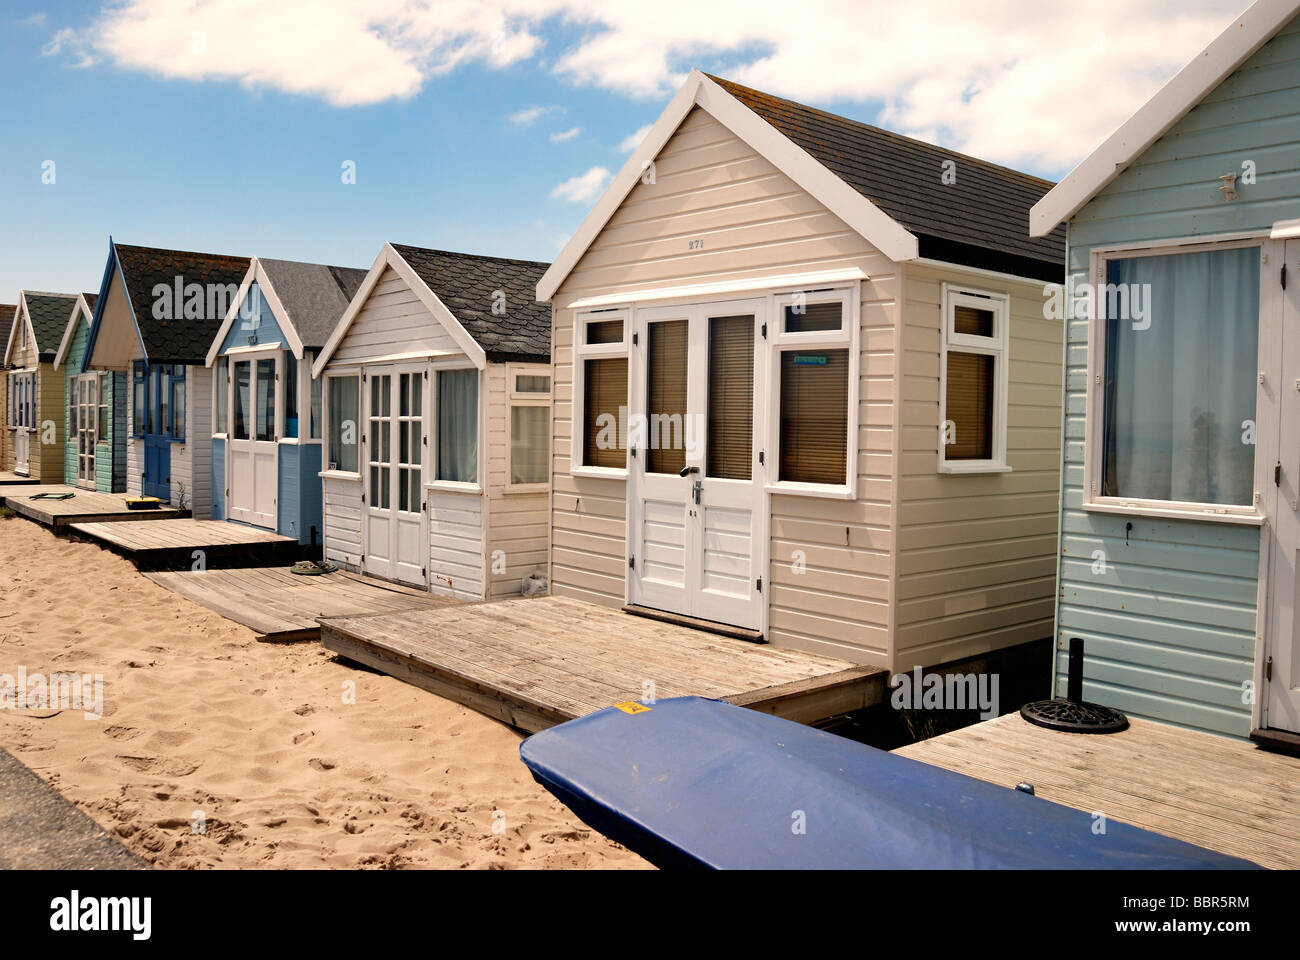 A row of large deluxe beach hut - Stock Image